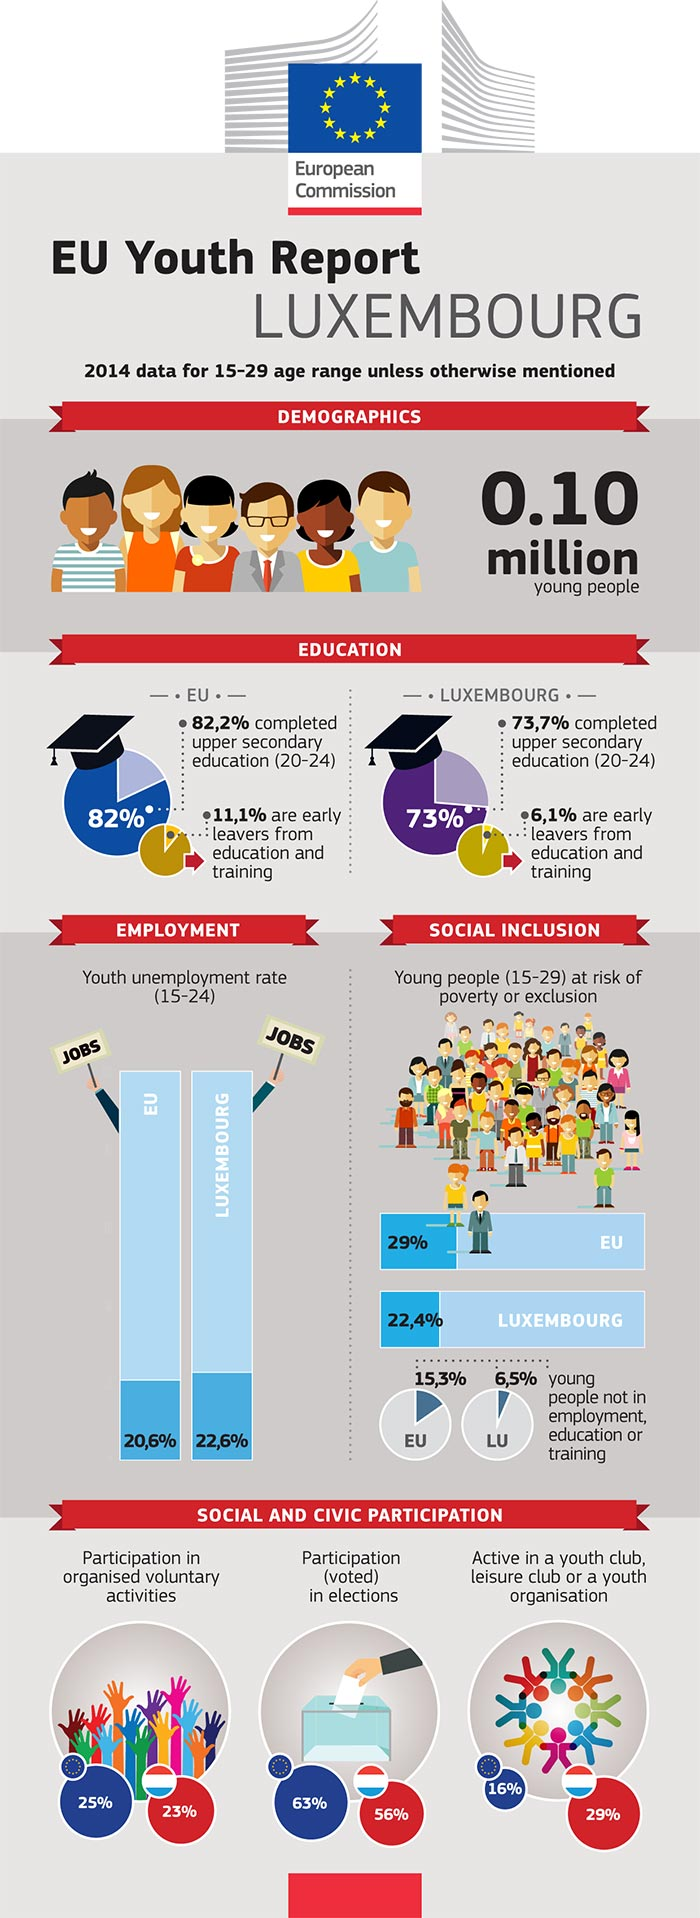 EU Youth Report infographic: Luxembourg